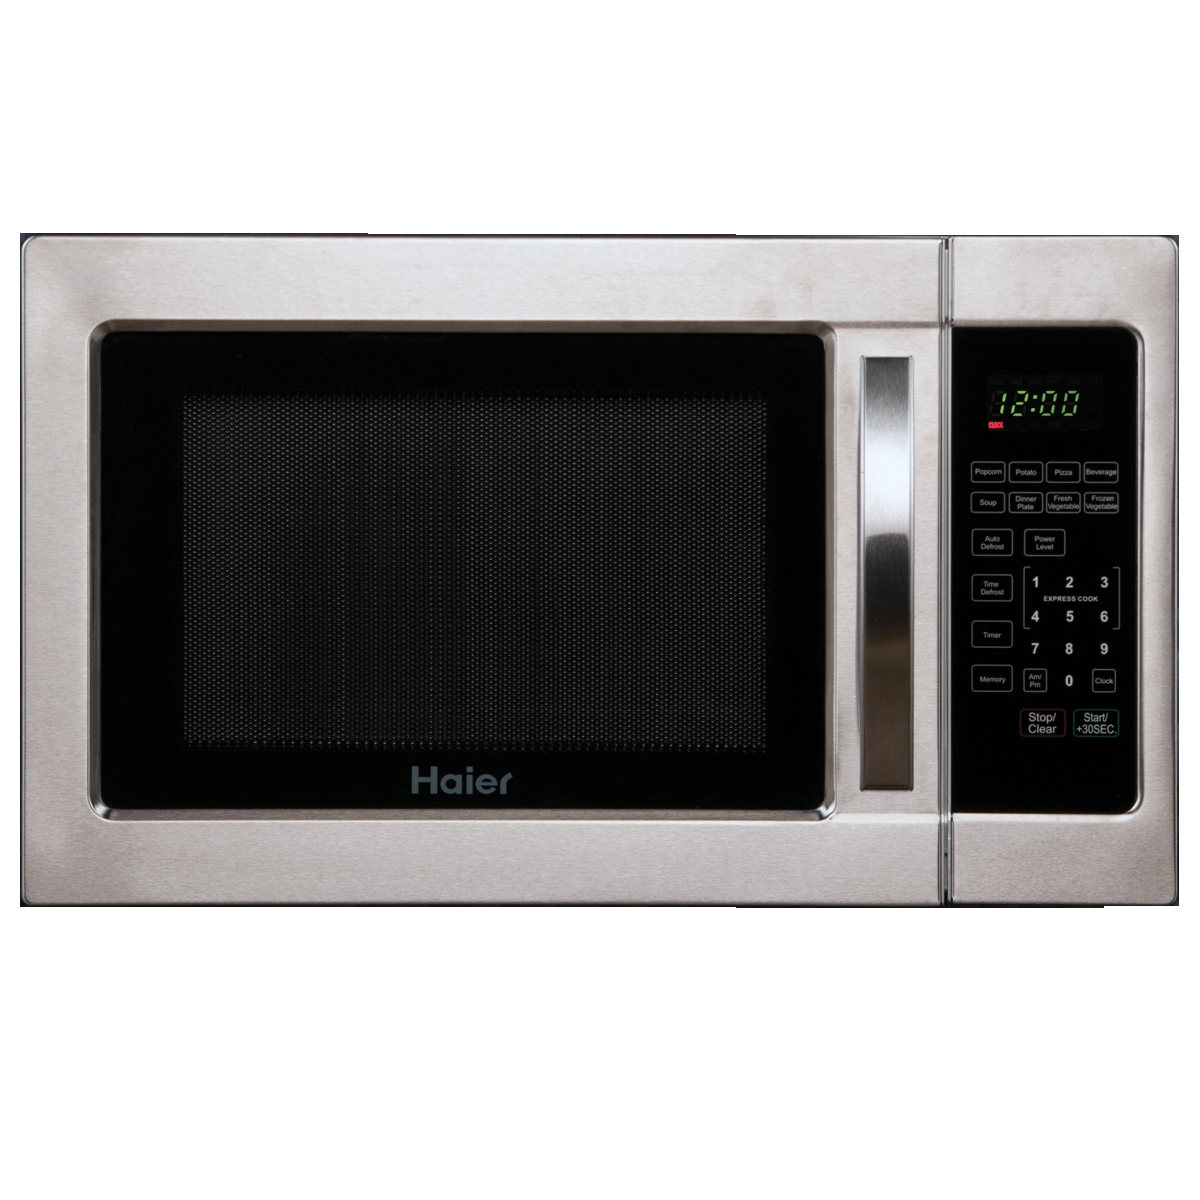 Haier Countertop Microwave : Brand: HAIER, Model: HMC1035SESS, Color: Stainless Steel